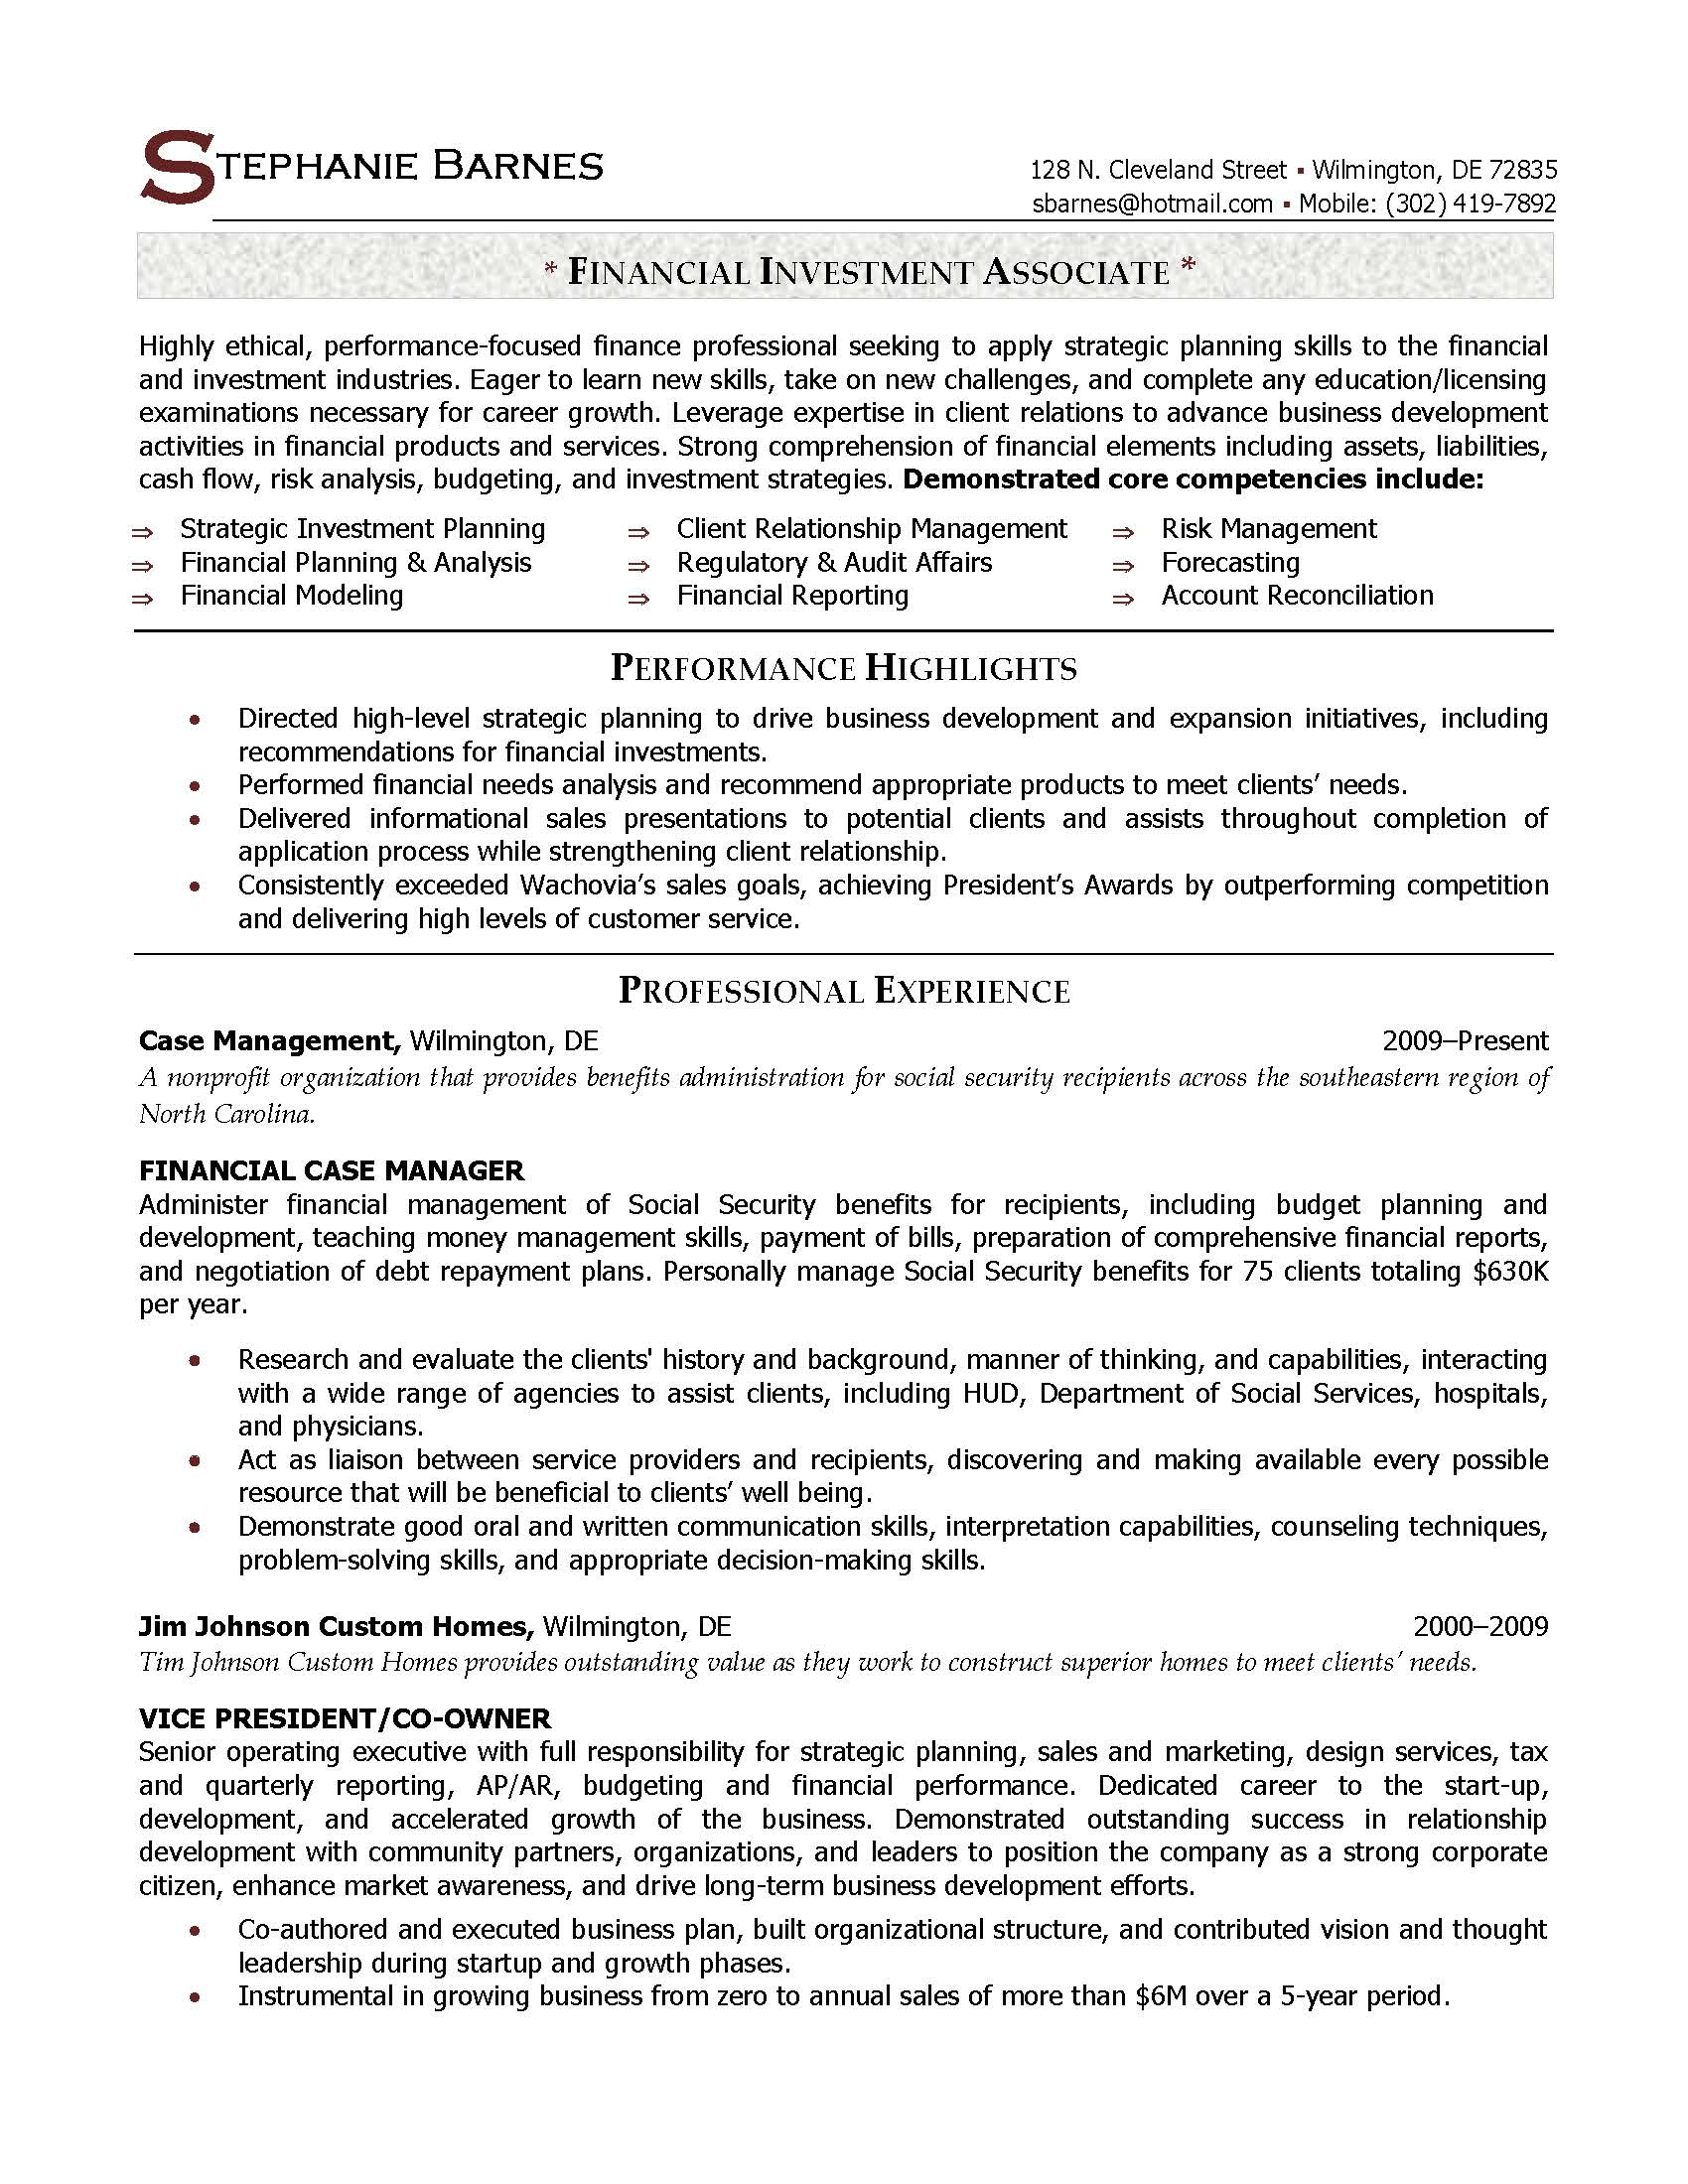 financial investment associate resume sample provided by elite resume writing services - Regulatory Affairs Resume Sample